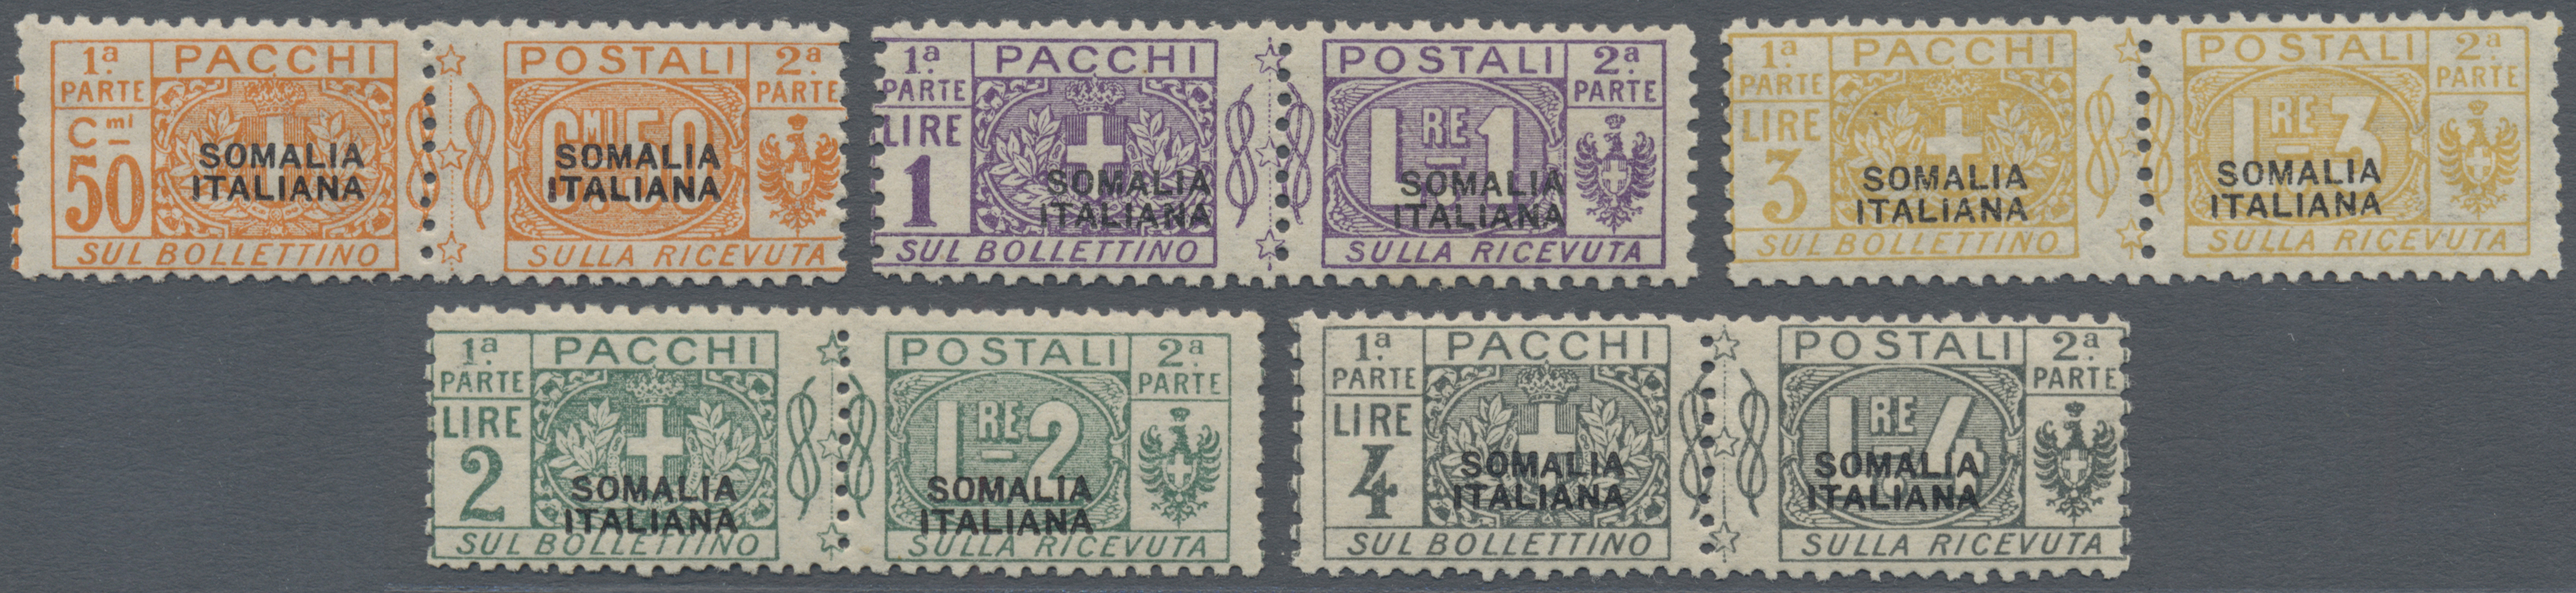 Lot 1065 - Italienisch-Somaliland - Paketmarken  -  Auktionshaus Christoph Gärtner GmbH & Co. KG Auction #41 Special auction part one